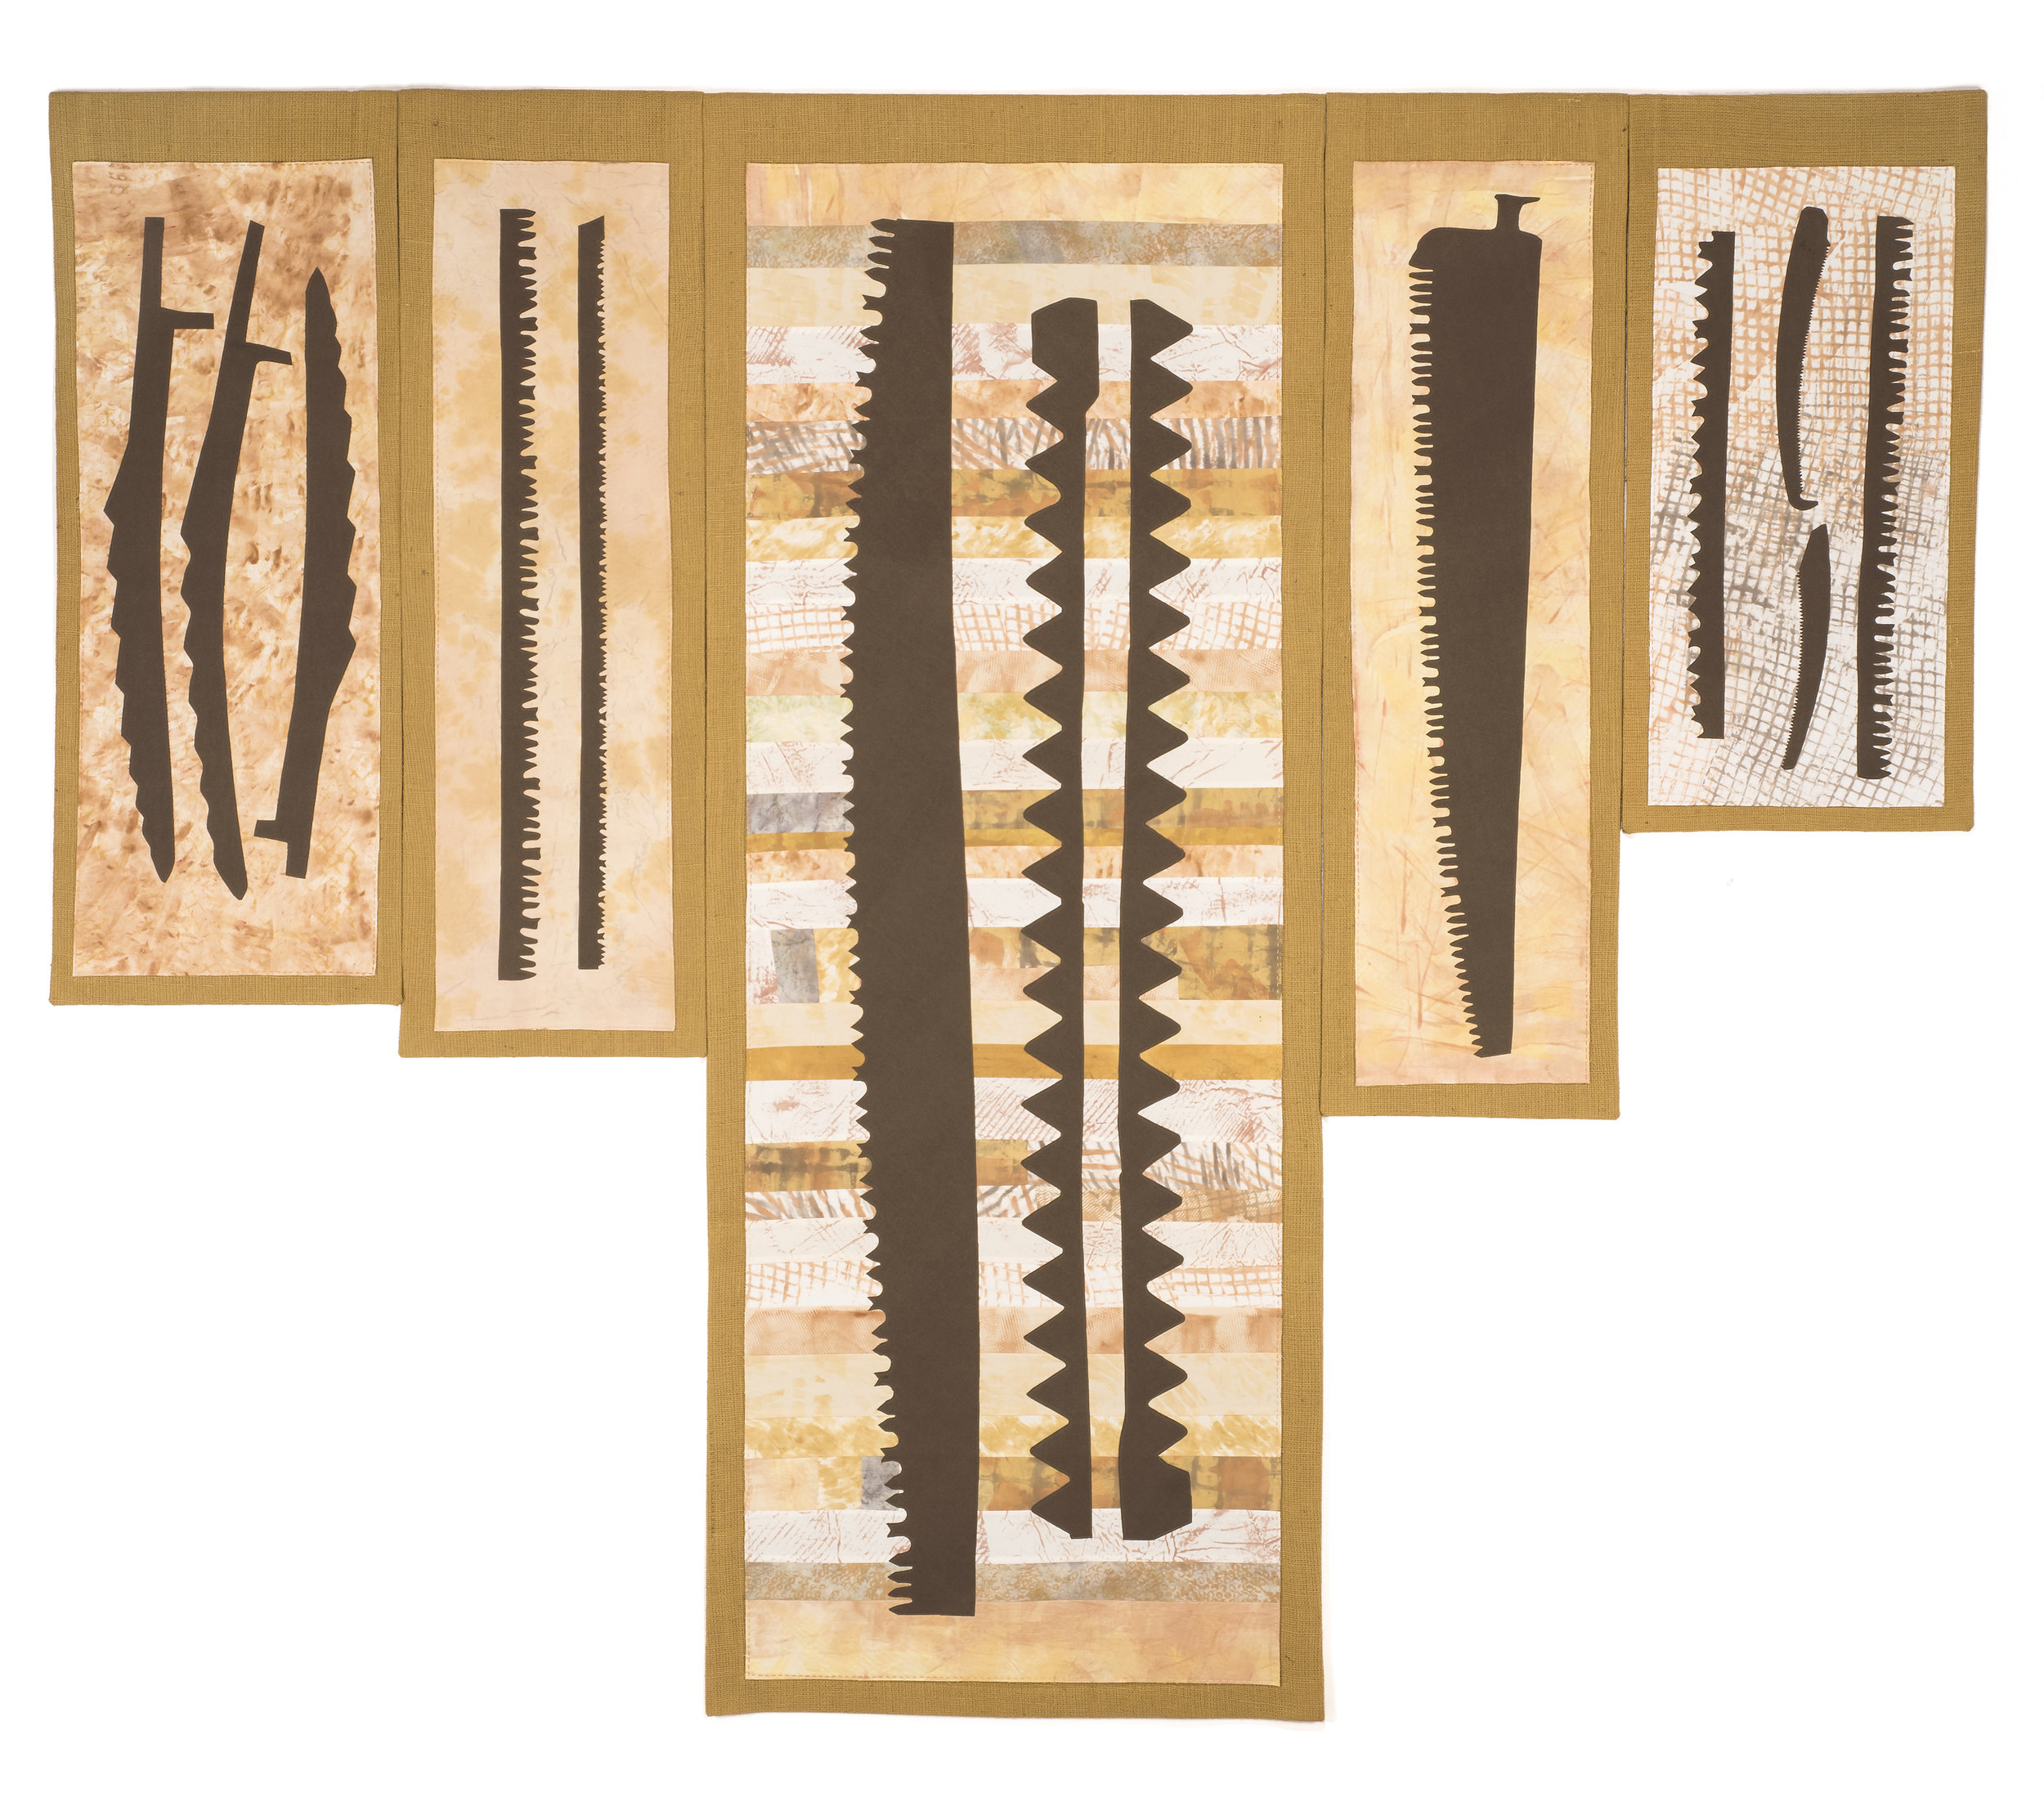 "Burlap and Blades #3, #2, #1, #5, #4, 98"" wide x 83.5"" high, 2019"